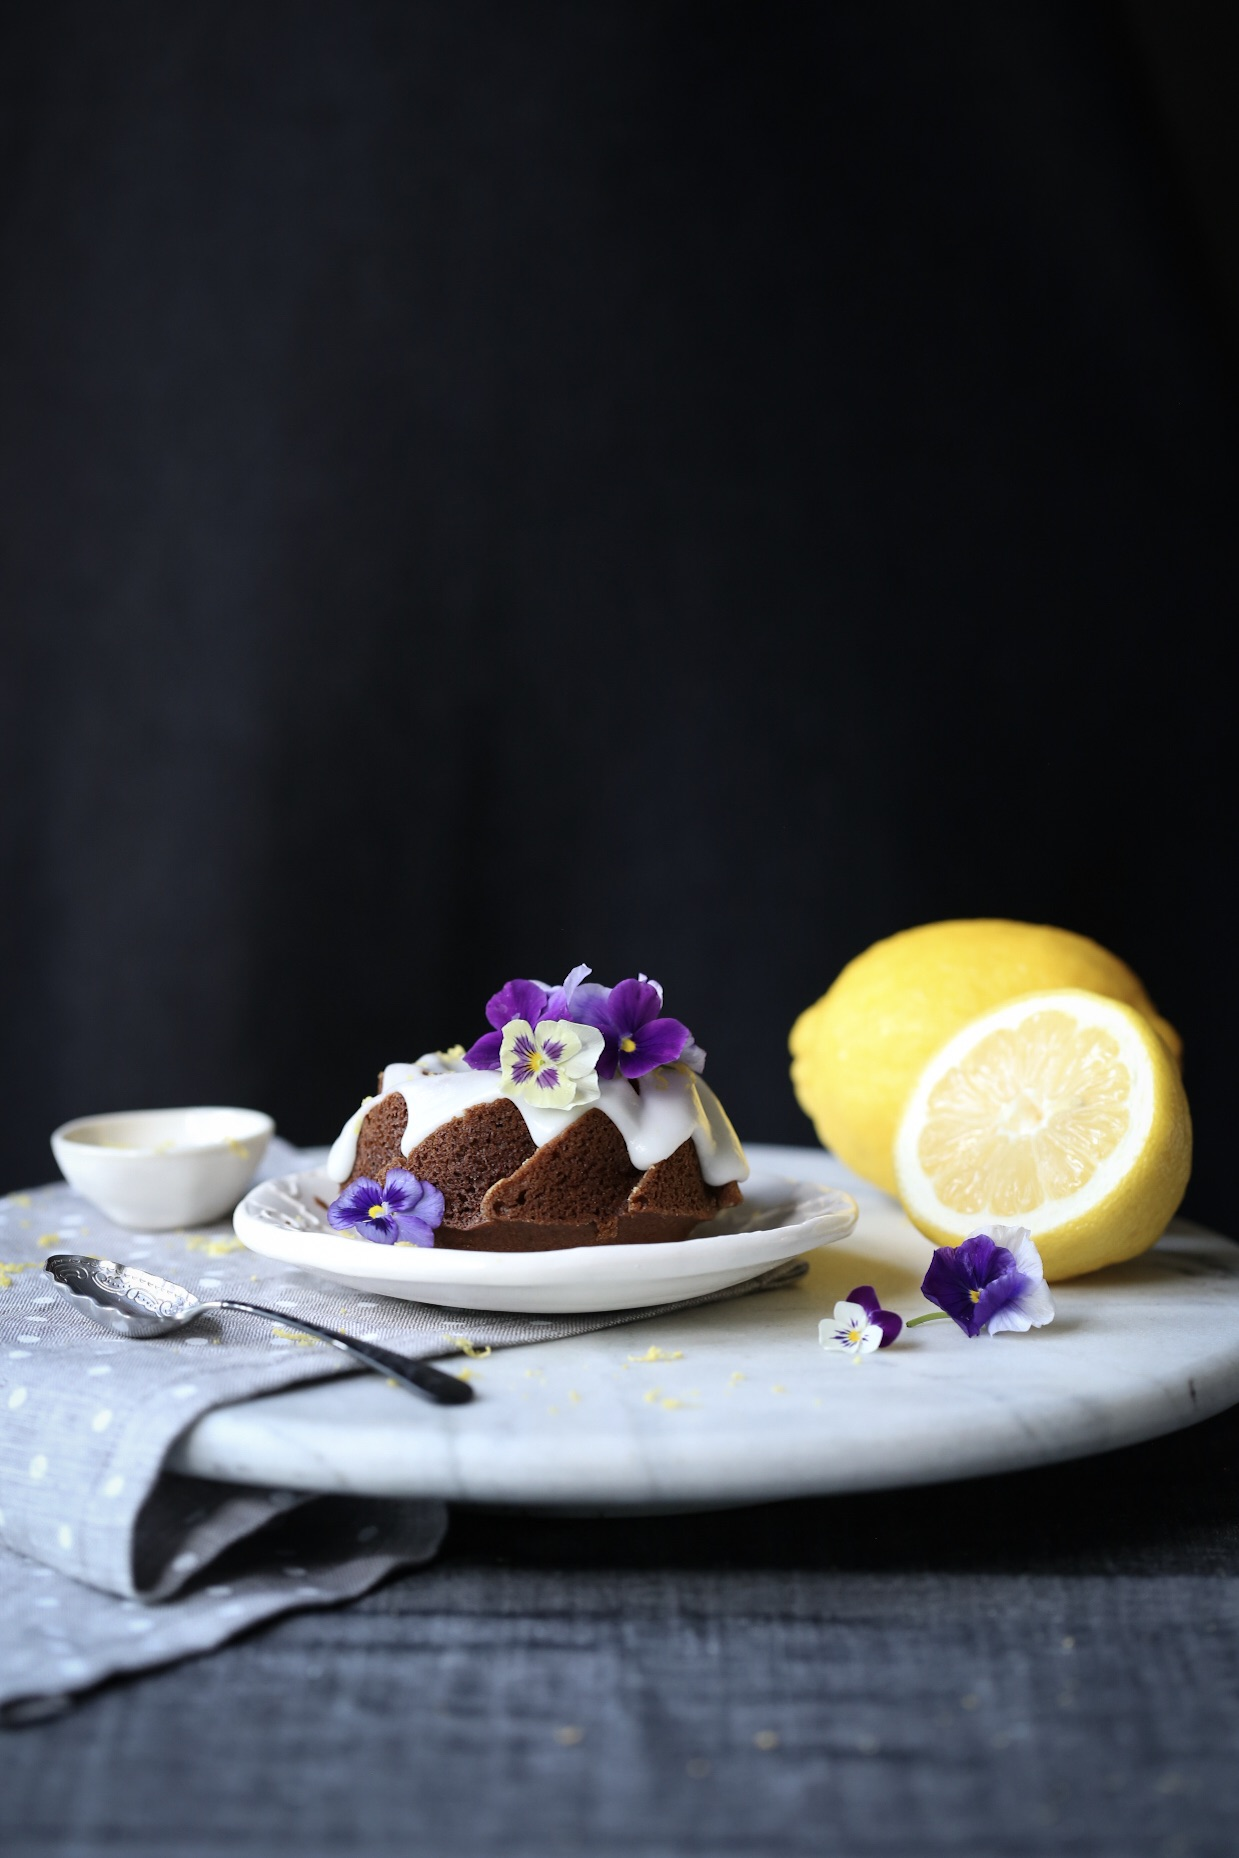 Mini Gingerbread Bundt Cakes with Lemon Glaze